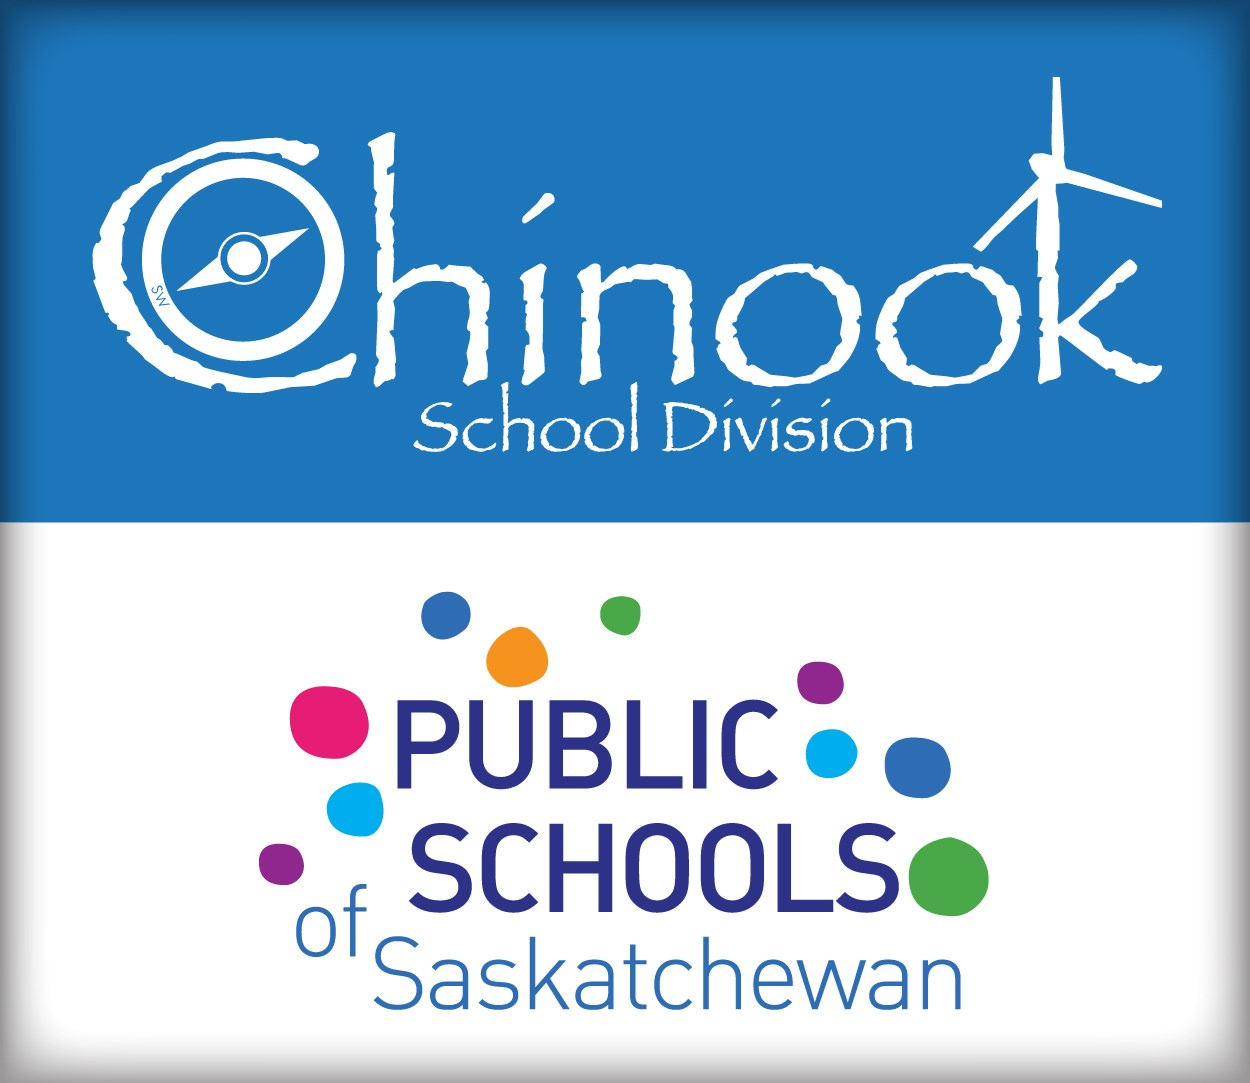 Chinook School Division